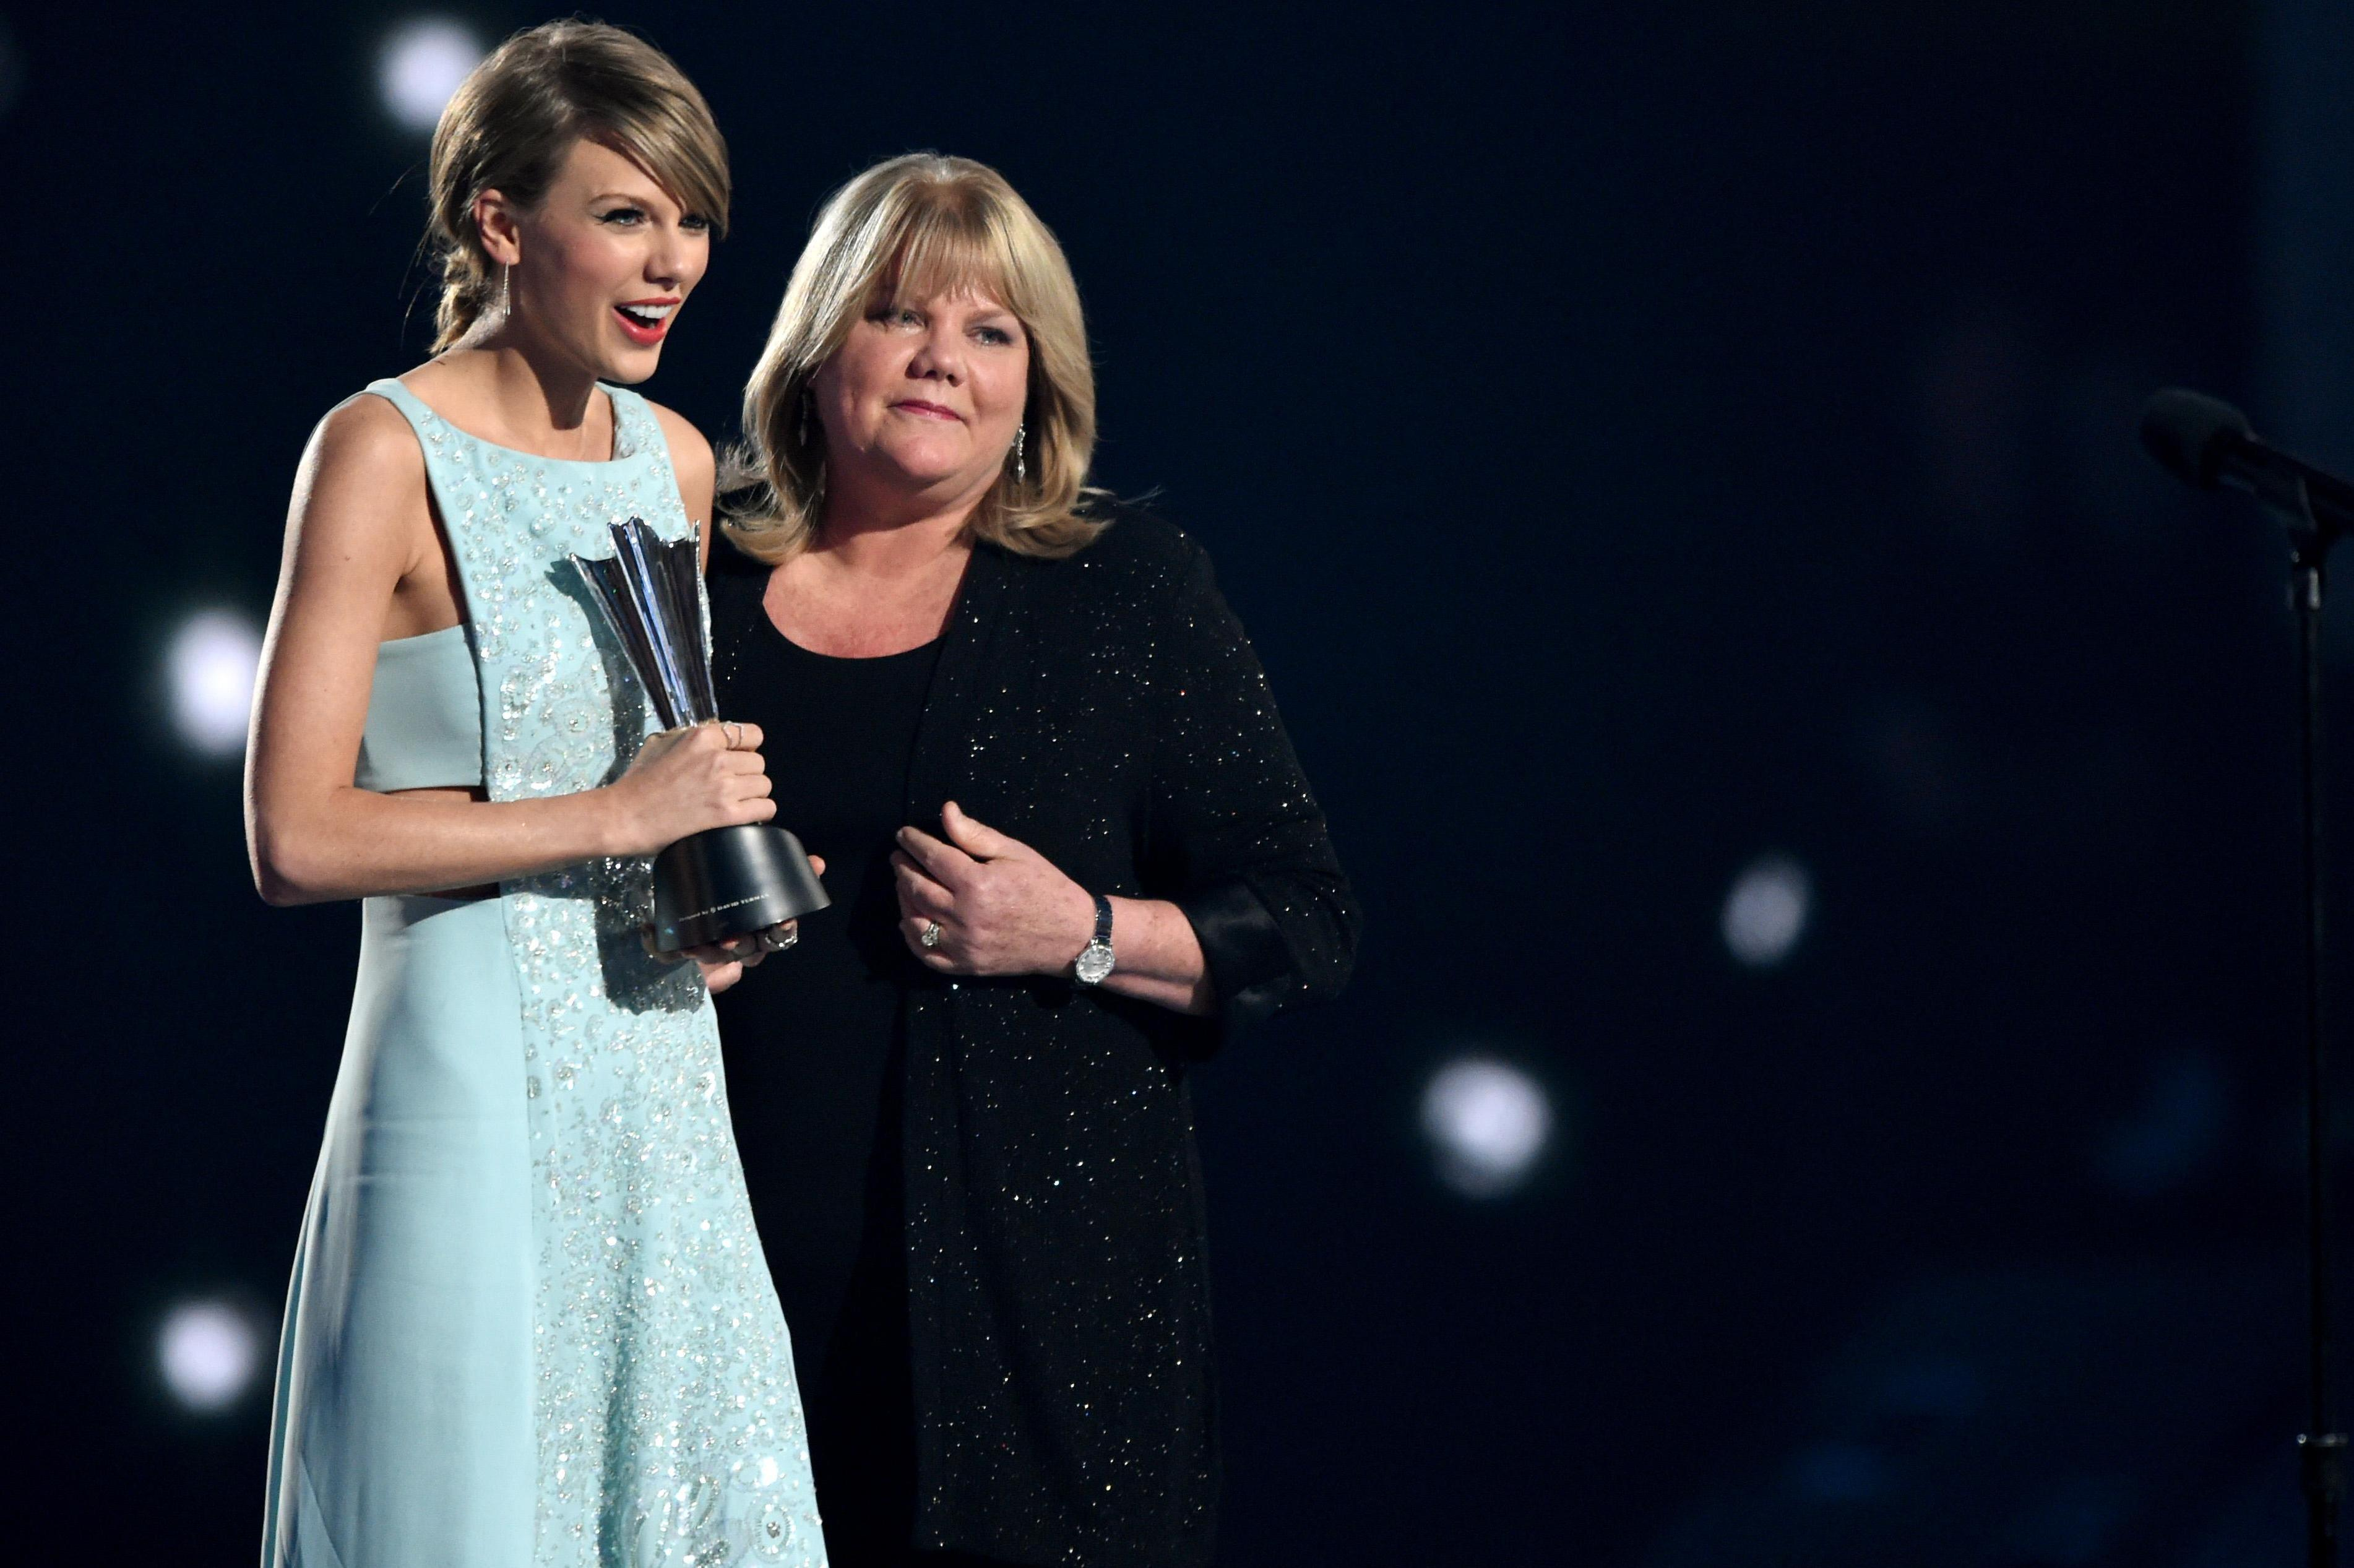 6 Must-See Moments From the 2015 ACMs